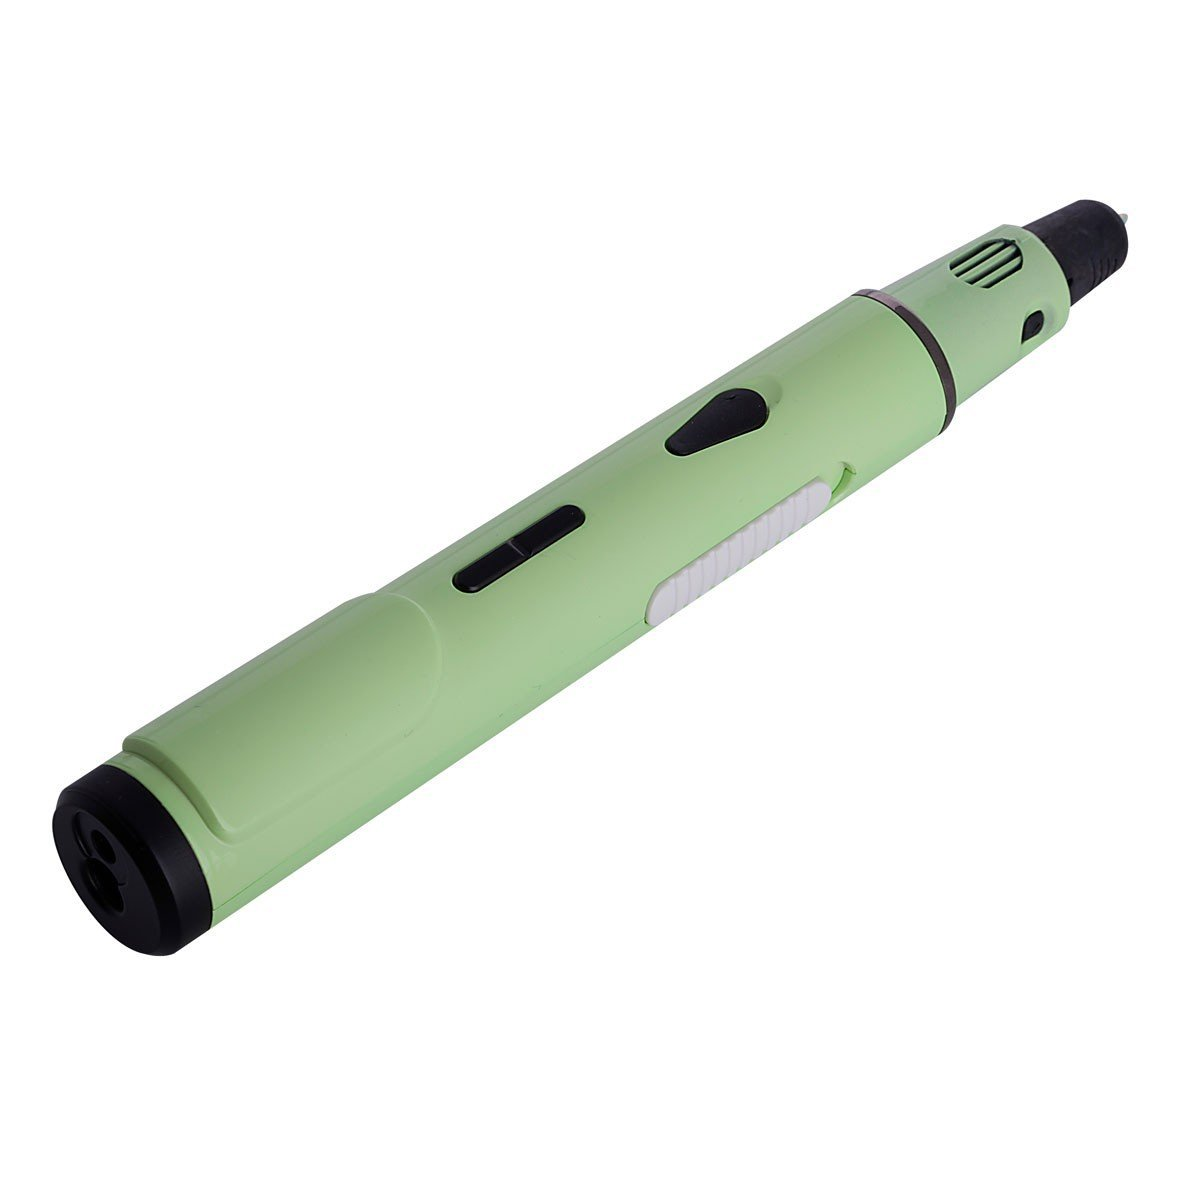 3D Printer Pen 3nd Generation 3D Stereo Drawing Pen Nozzle Extruder Green by Unknown (Image #3)